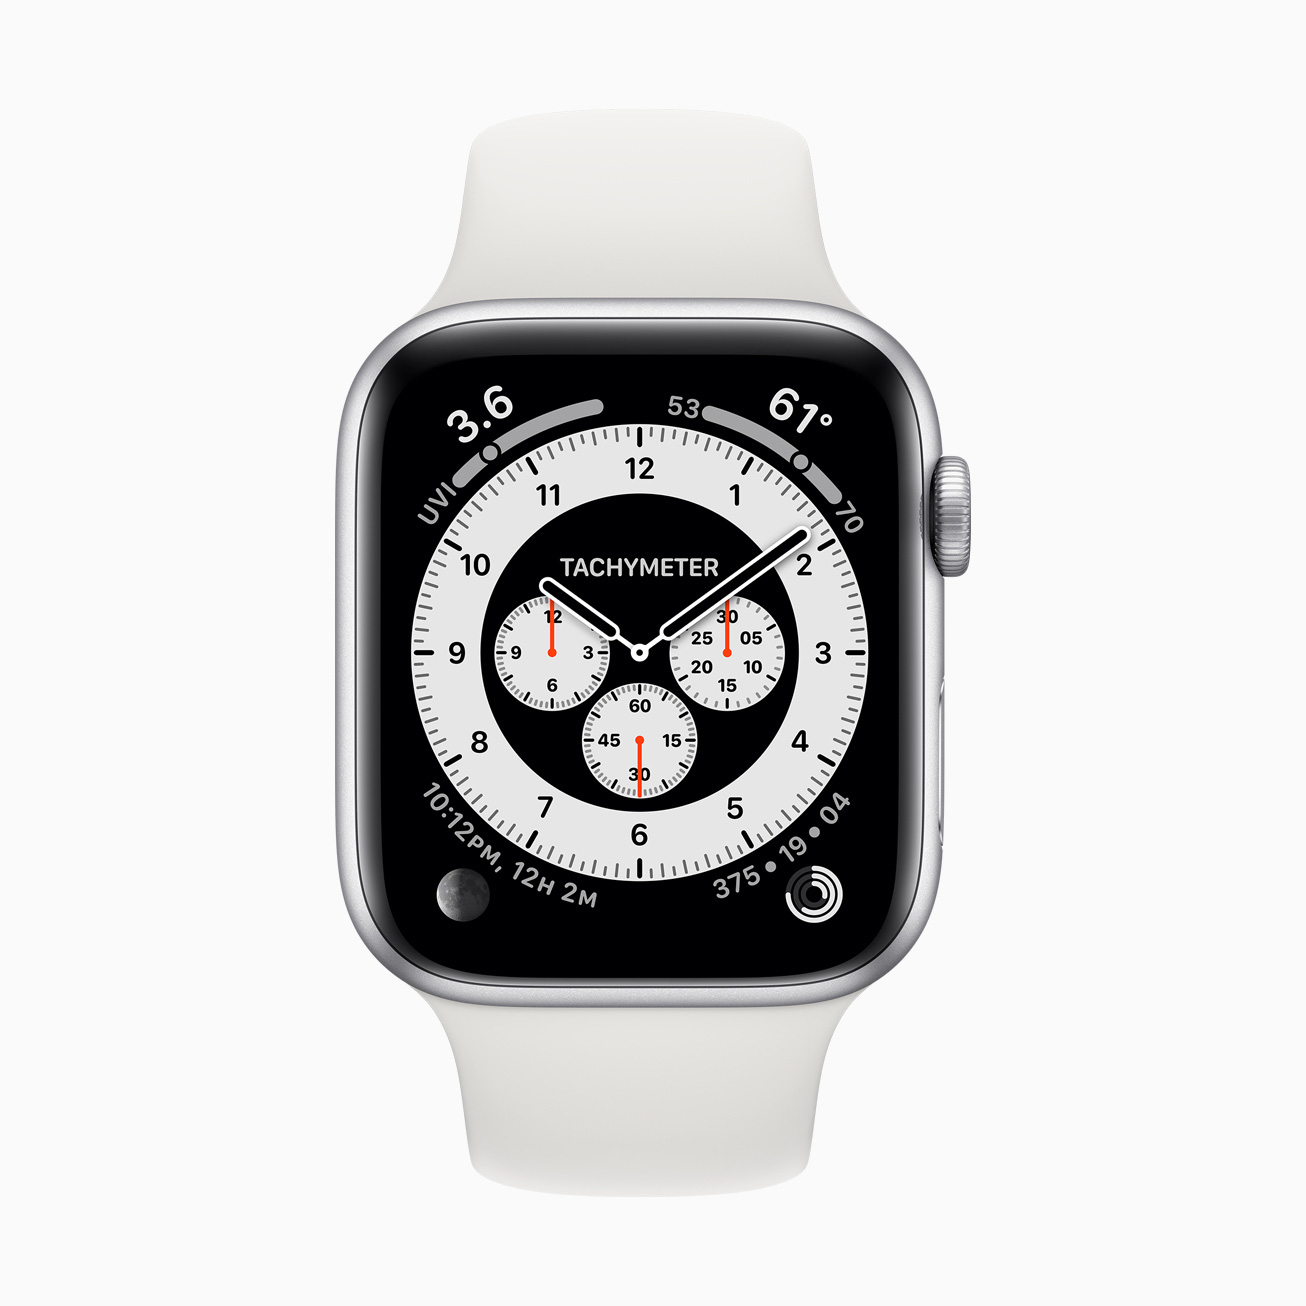 [Bild: Apple-watch-watchos7_chronograph-pro_06222020.jpg]